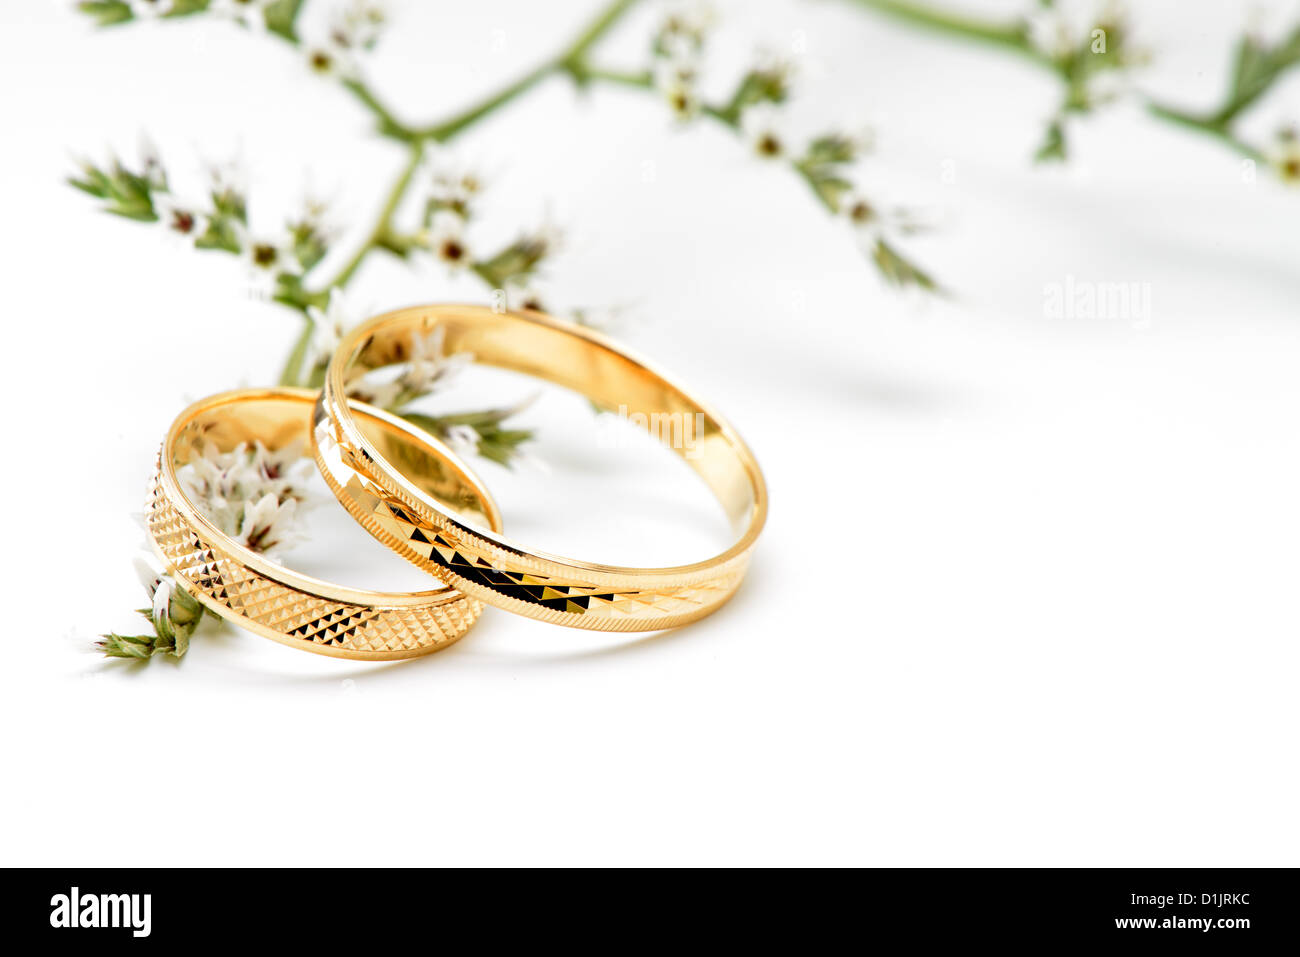 Gold Wedding Rings And Branch Flowers Isolated On White Background